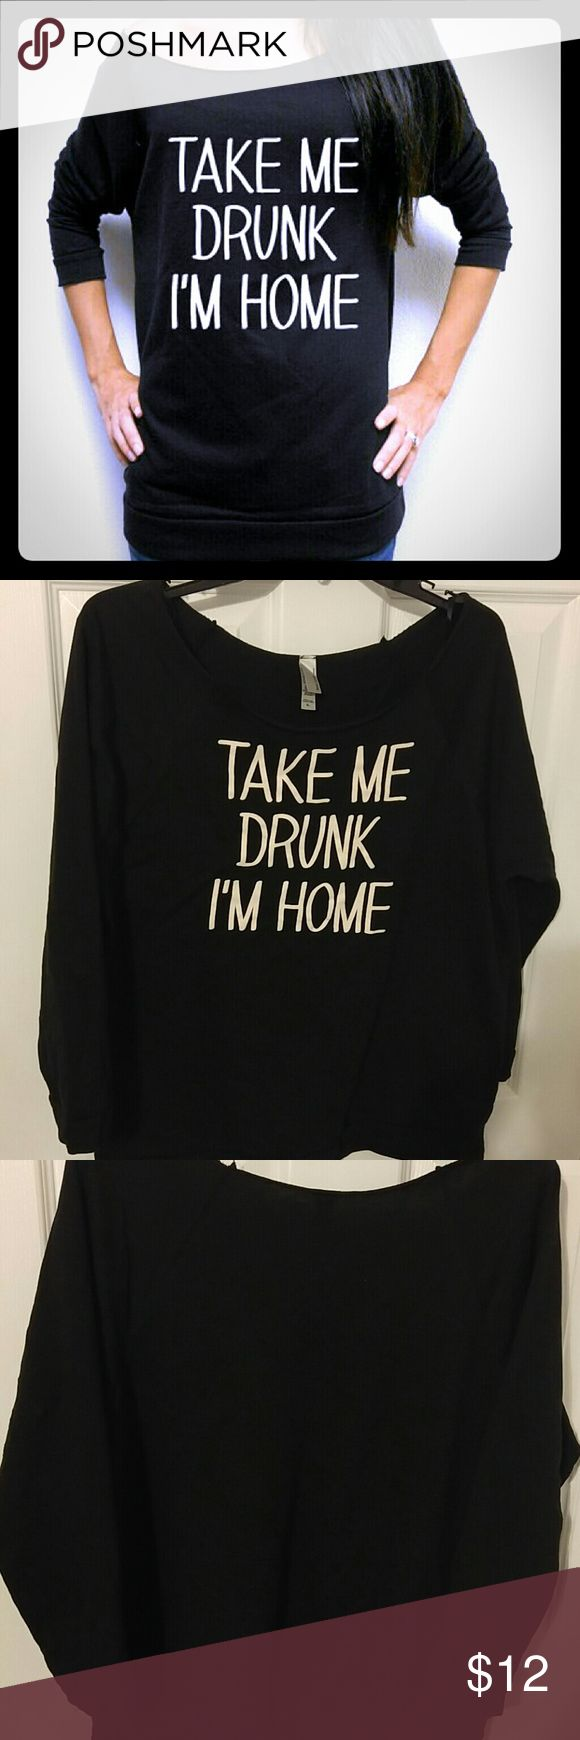 Take me drunk I'm home slouchy sweatshirt Never worn, New w/o TAGS. Sleeves on this awesome shirt are 3/4. Perfect for ladies night or lounging. next level apparel  Tops Sweatshirts & Hoodies